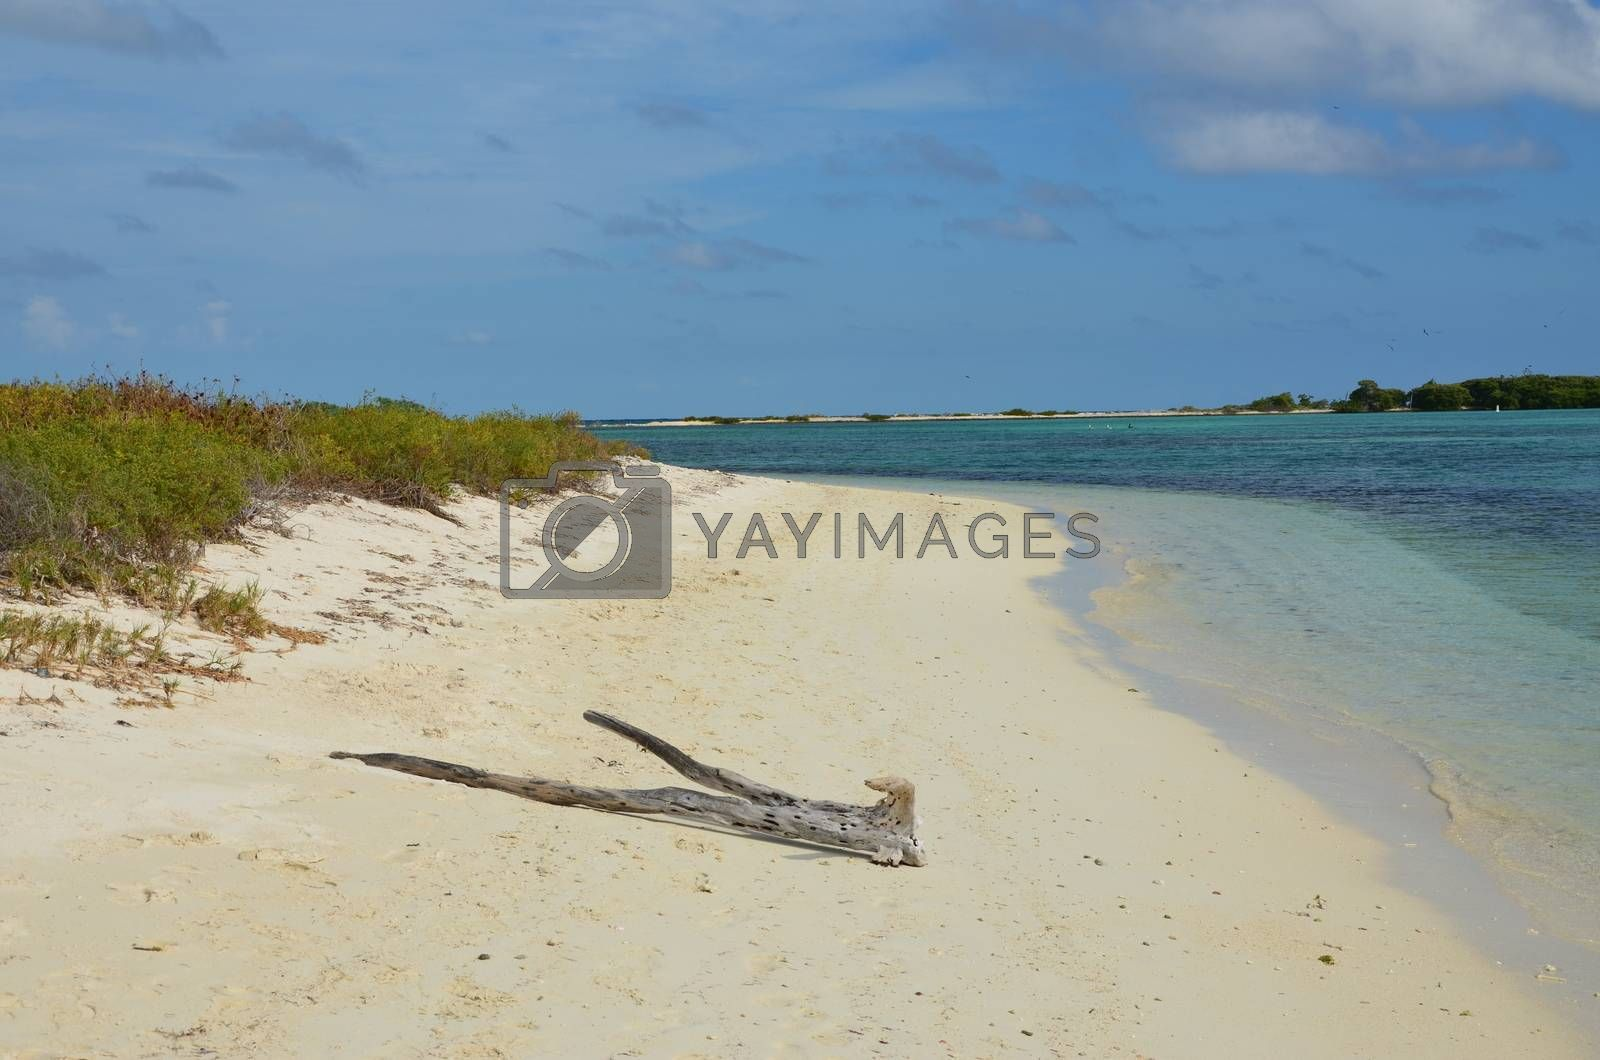 A remote beach on Dry Tortugas a small isalnd off the coast of florida.